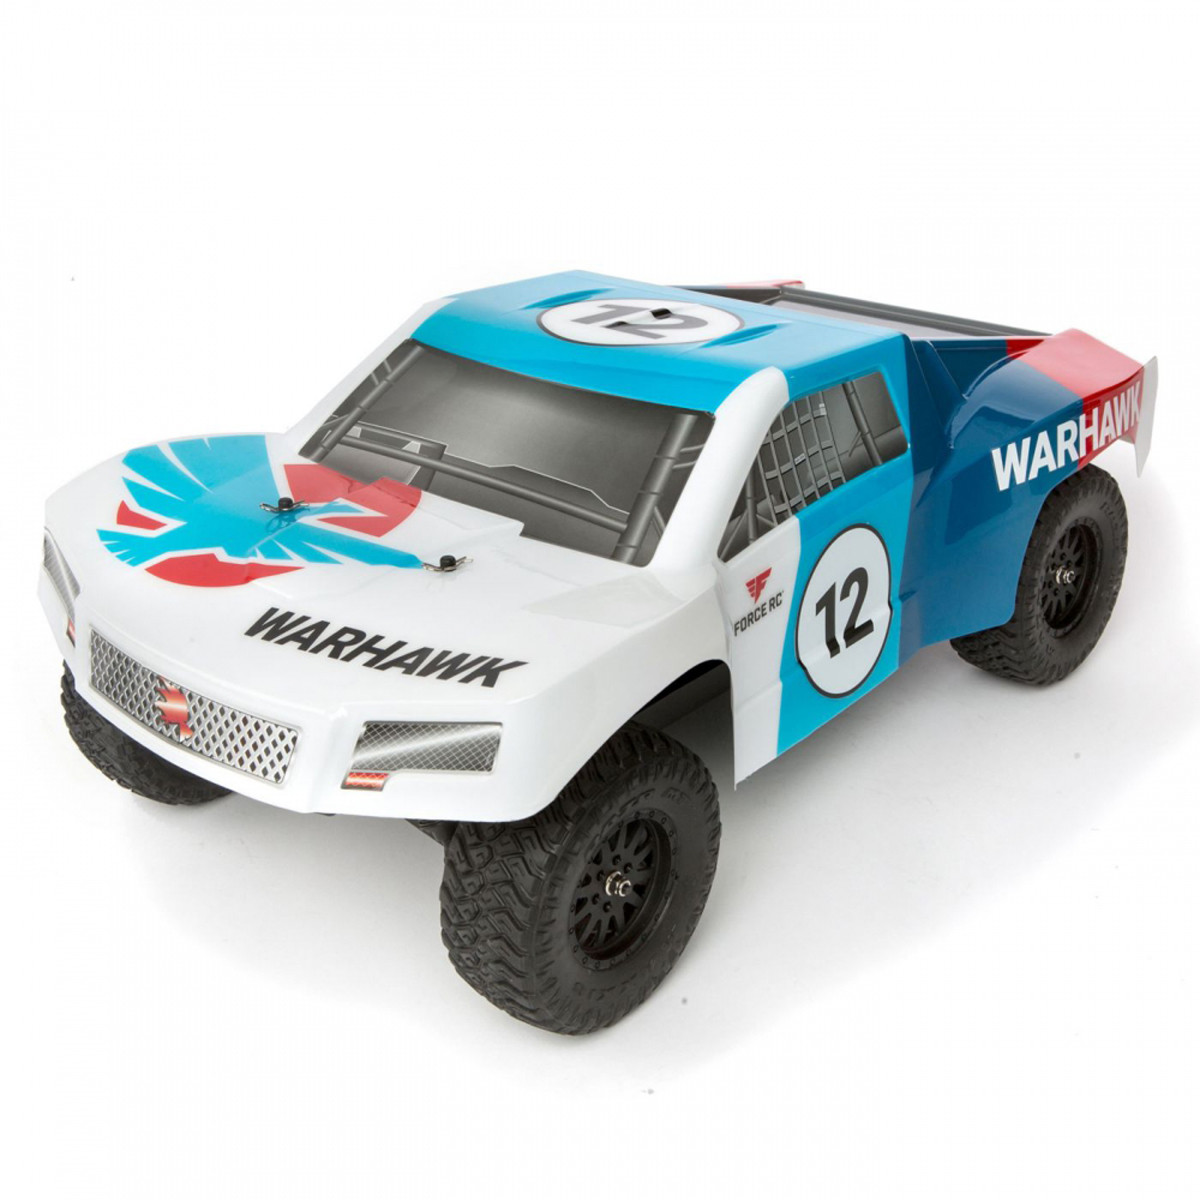 Force RC 1/10 Warhawk RTR 4WD Short Course Truck